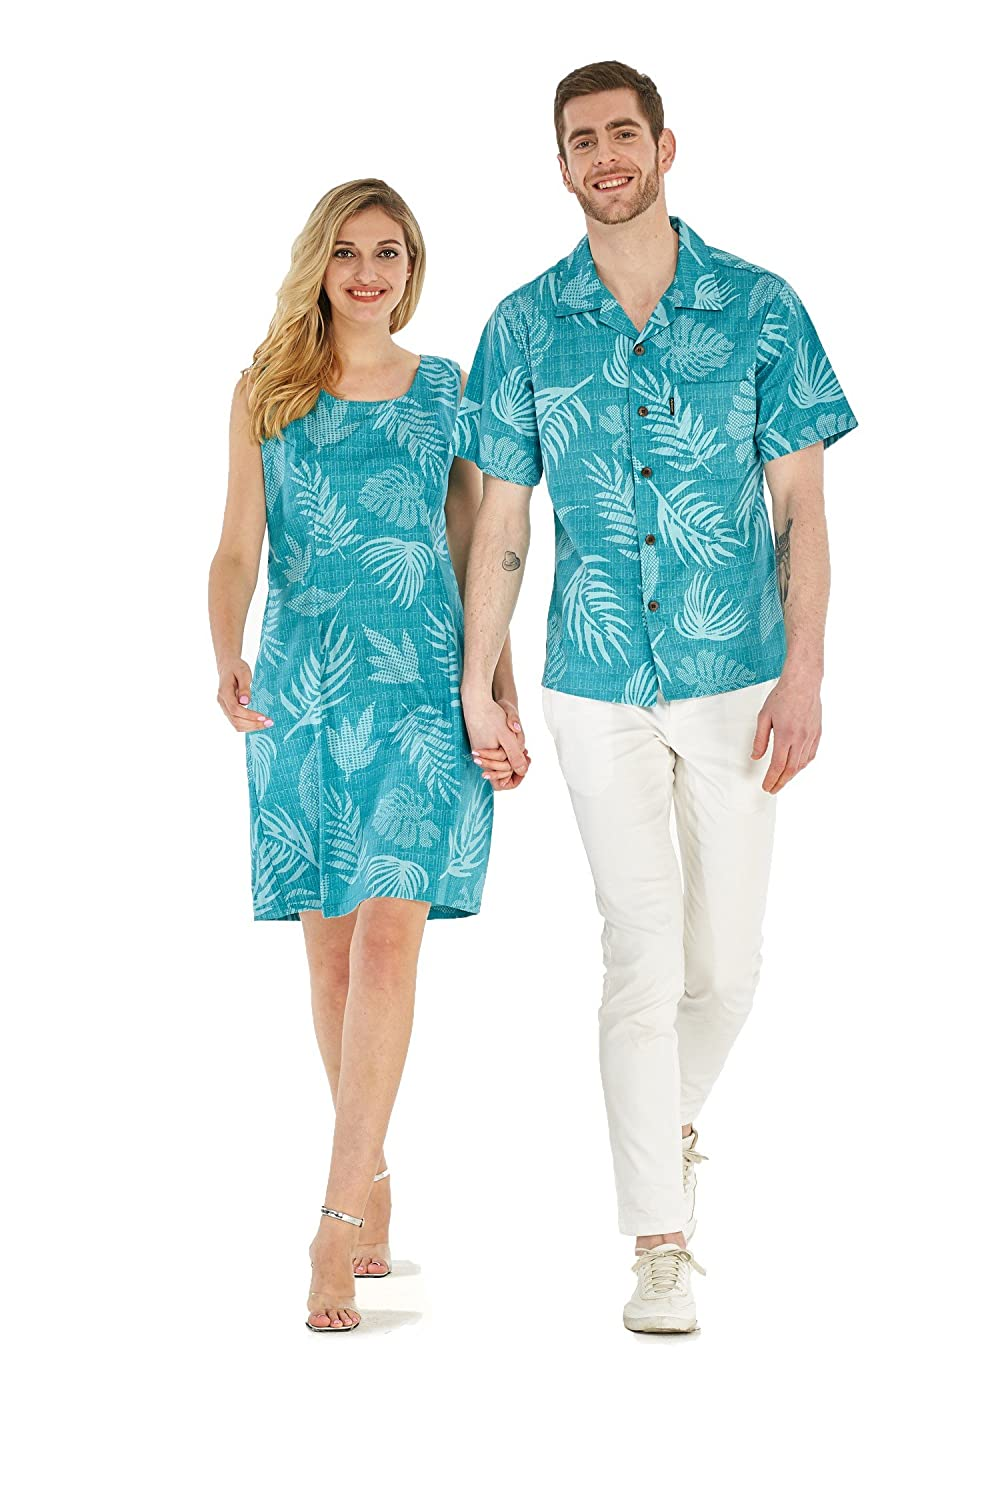 660761d6 Exact Matching Outfit Price includes one men shirt and one women Dress Made  of 100% Cotton, pre-shrunk. Beautiful Hawaiian print, perfect for any beach  ...